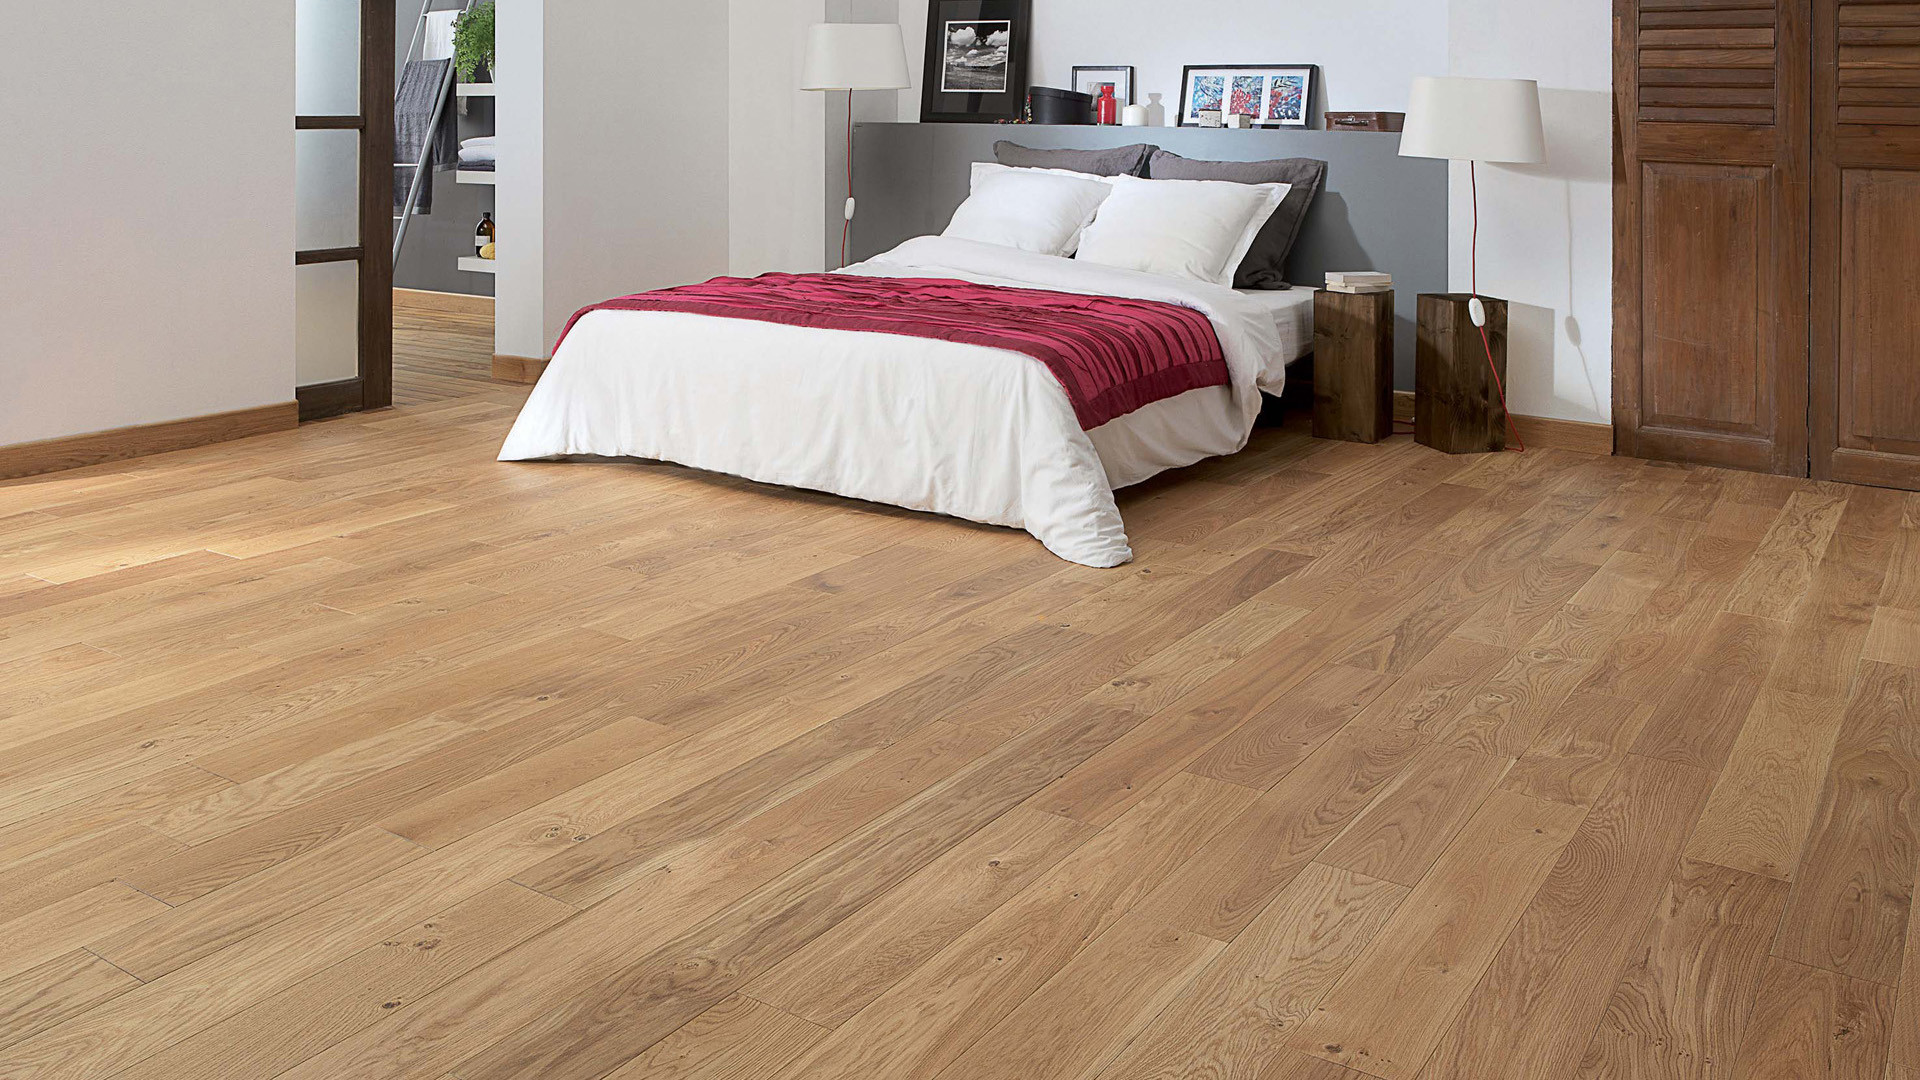 parquet ch ne authentique huile naturelle sonate 90 parquet massif. Black Bedroom Furniture Sets. Home Design Ideas